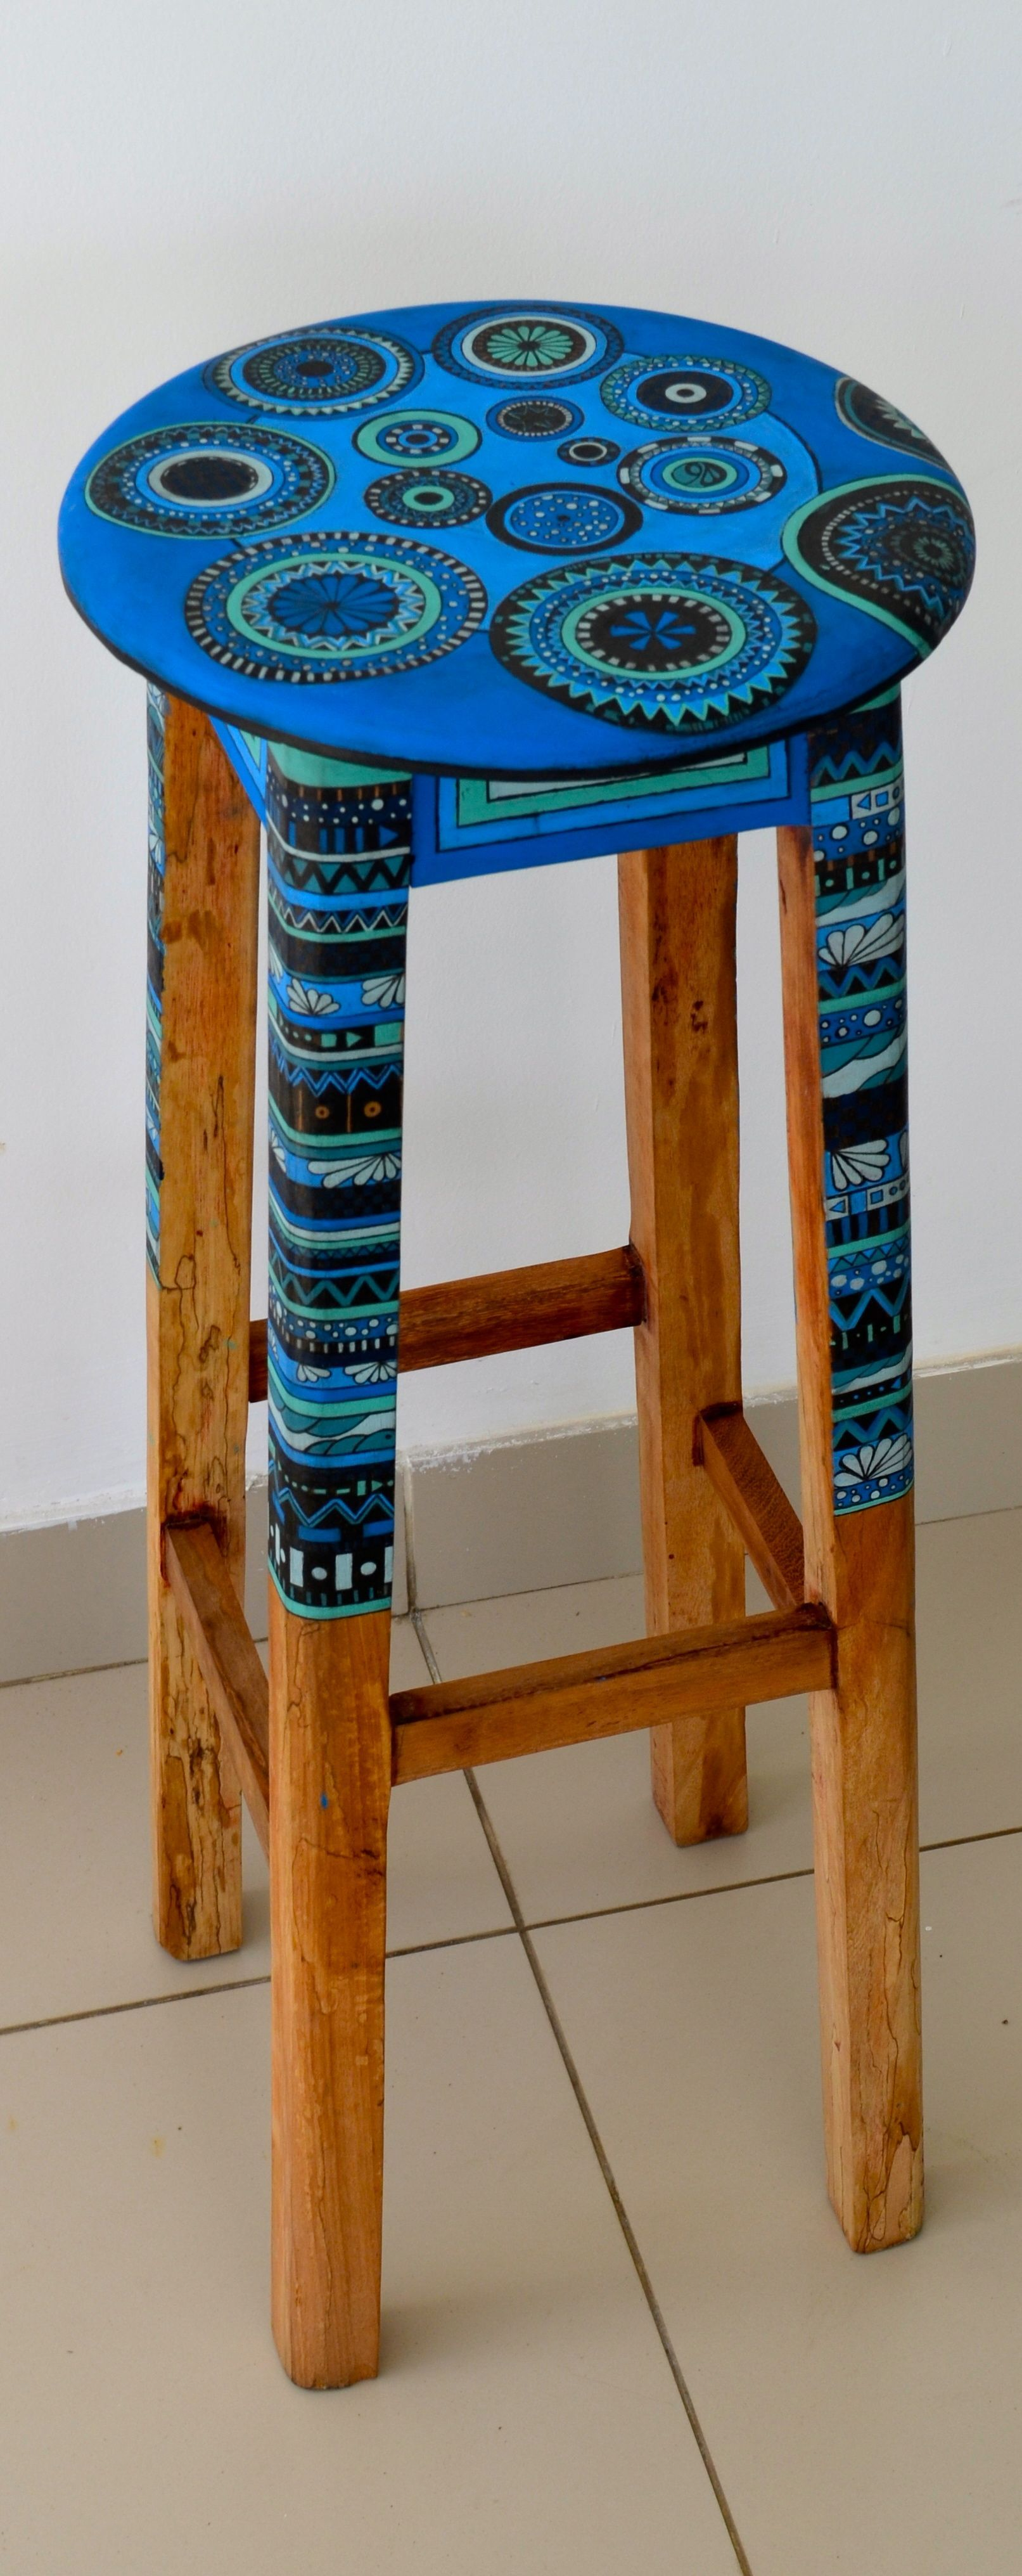 Funky Wooden Chairs Black Swivel Office Chair With Arms Hand Painted Stool By Hc Wood Design Muebles